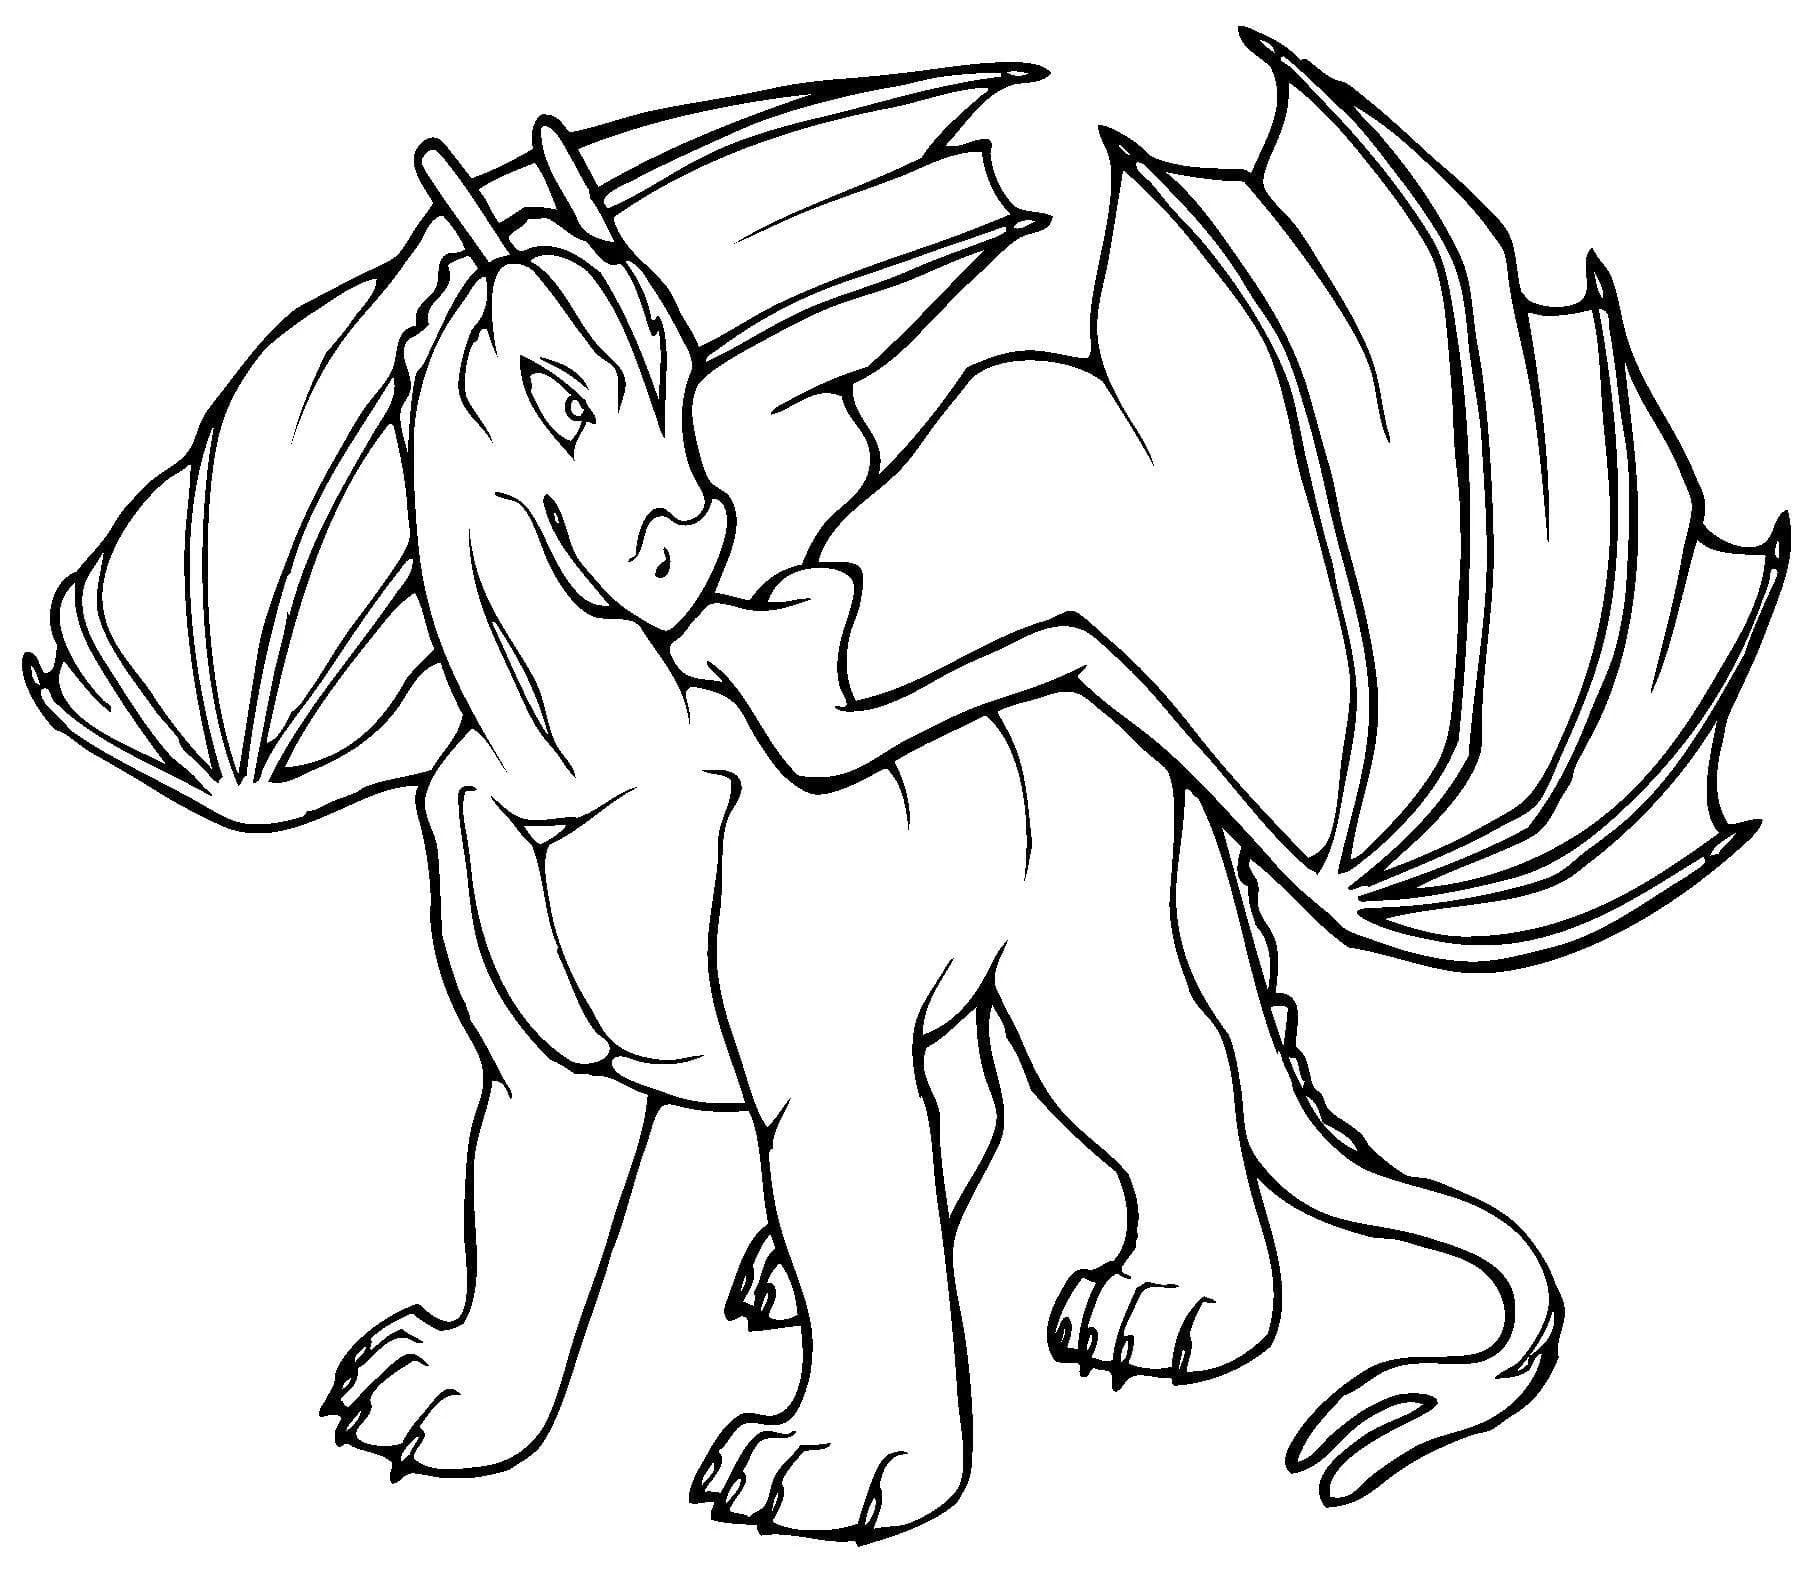 dragon coloring page free printable coloring pages - HD 1812×1573